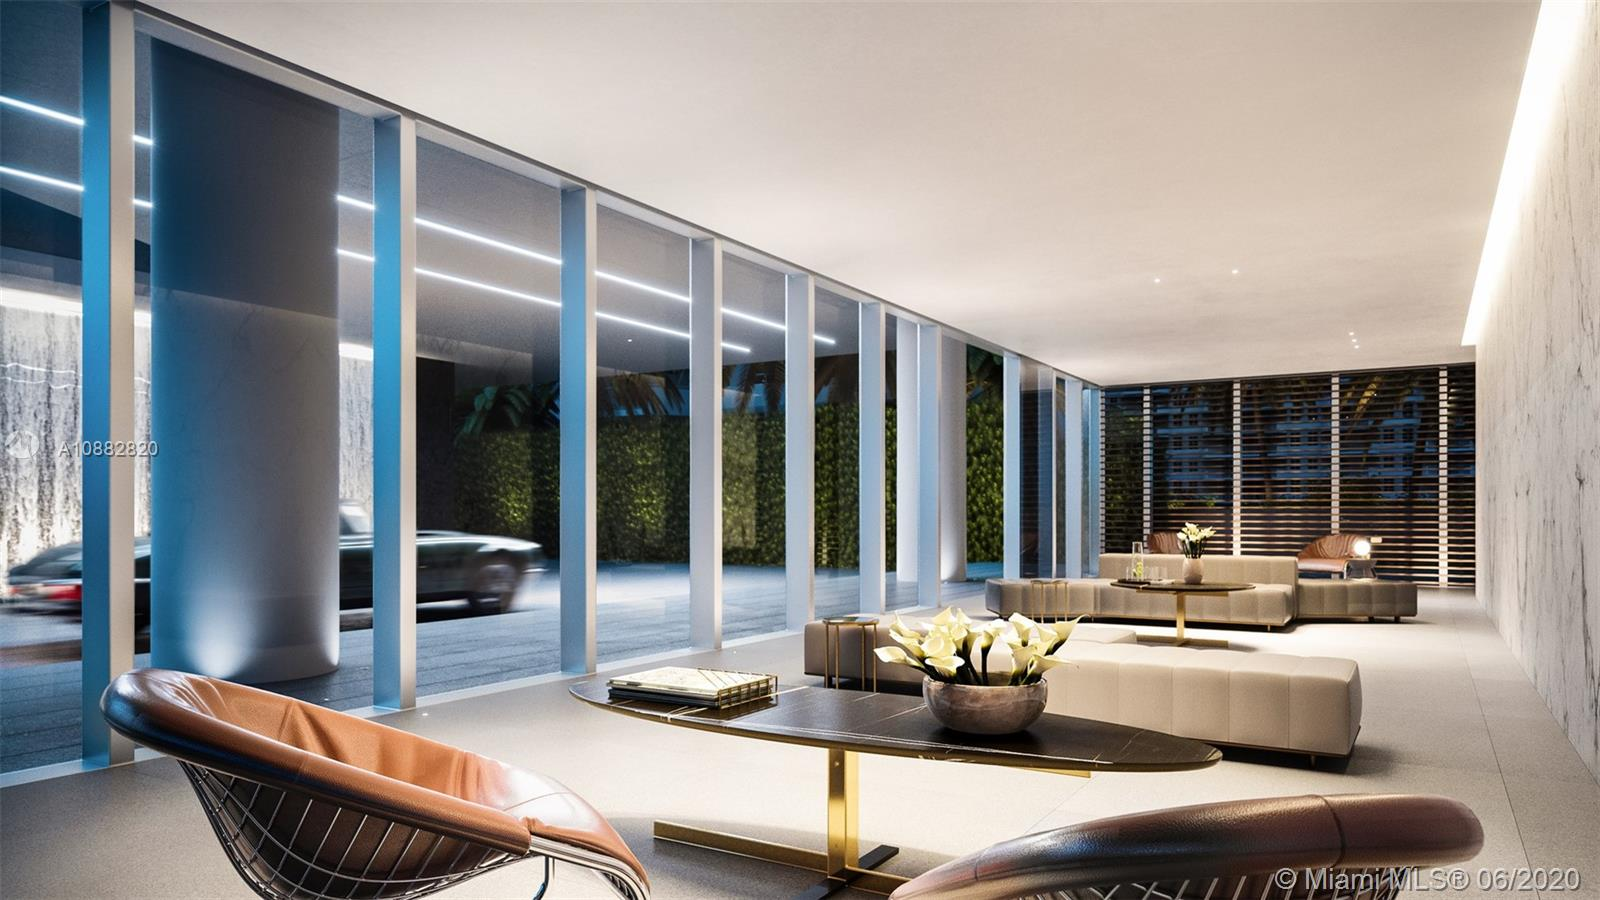 Exclusive interior design in all amenities and throughout the building by MINOTTI